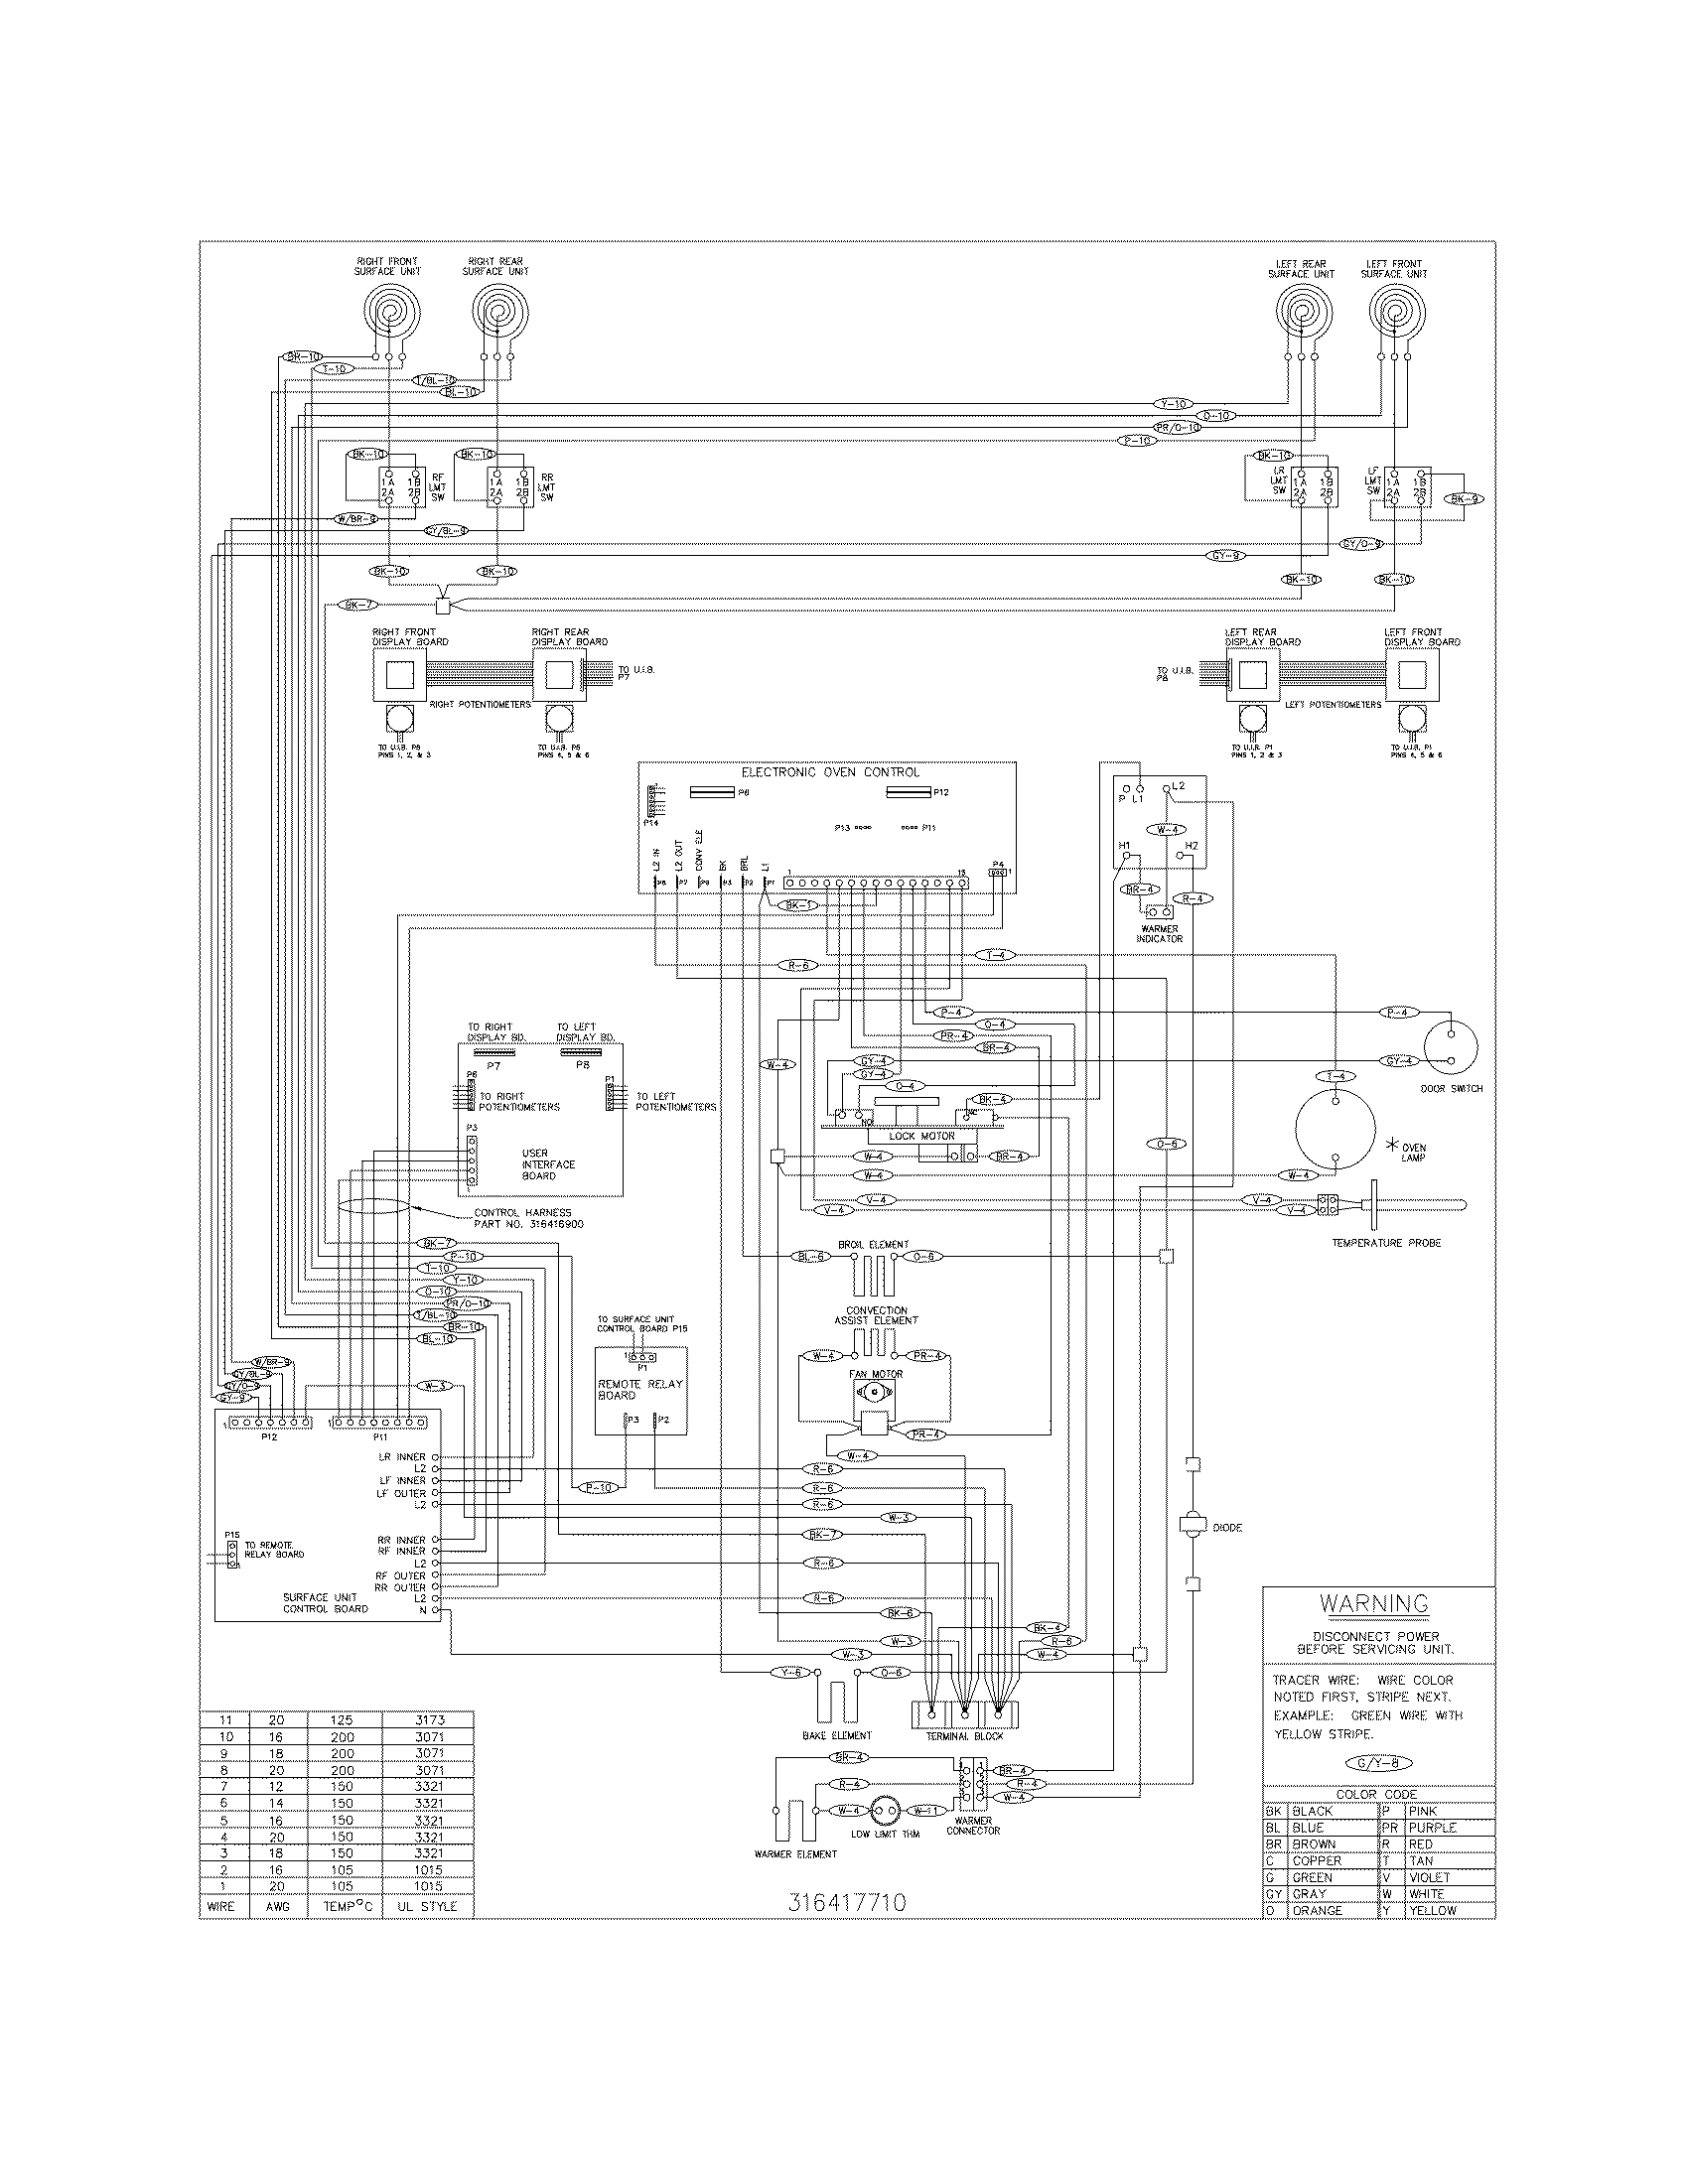 Vintage Ge Dryer Wiring Diagram | Wiring Diagram on ge wiring schematic, ge electric dryer, ge dryer wiring color, ge schematic diagrams, ge dryer replacement parts, ge dryer rotary start switch, ge dryer thermal fuse location, ge range electrical diagram, ge appliance parts diagram, ge dryer problems, kenmore dryer door switch diagram, general electric dryer diagram, ge clothes dryer parts, dryer schematic diagram, ge dryer not heating, ge dishwasher diagram, ge dryer plug wiring, ge appliance wiring diagrams, ge dryer switch wiring, maytag neptune dryer belt routing diagram,